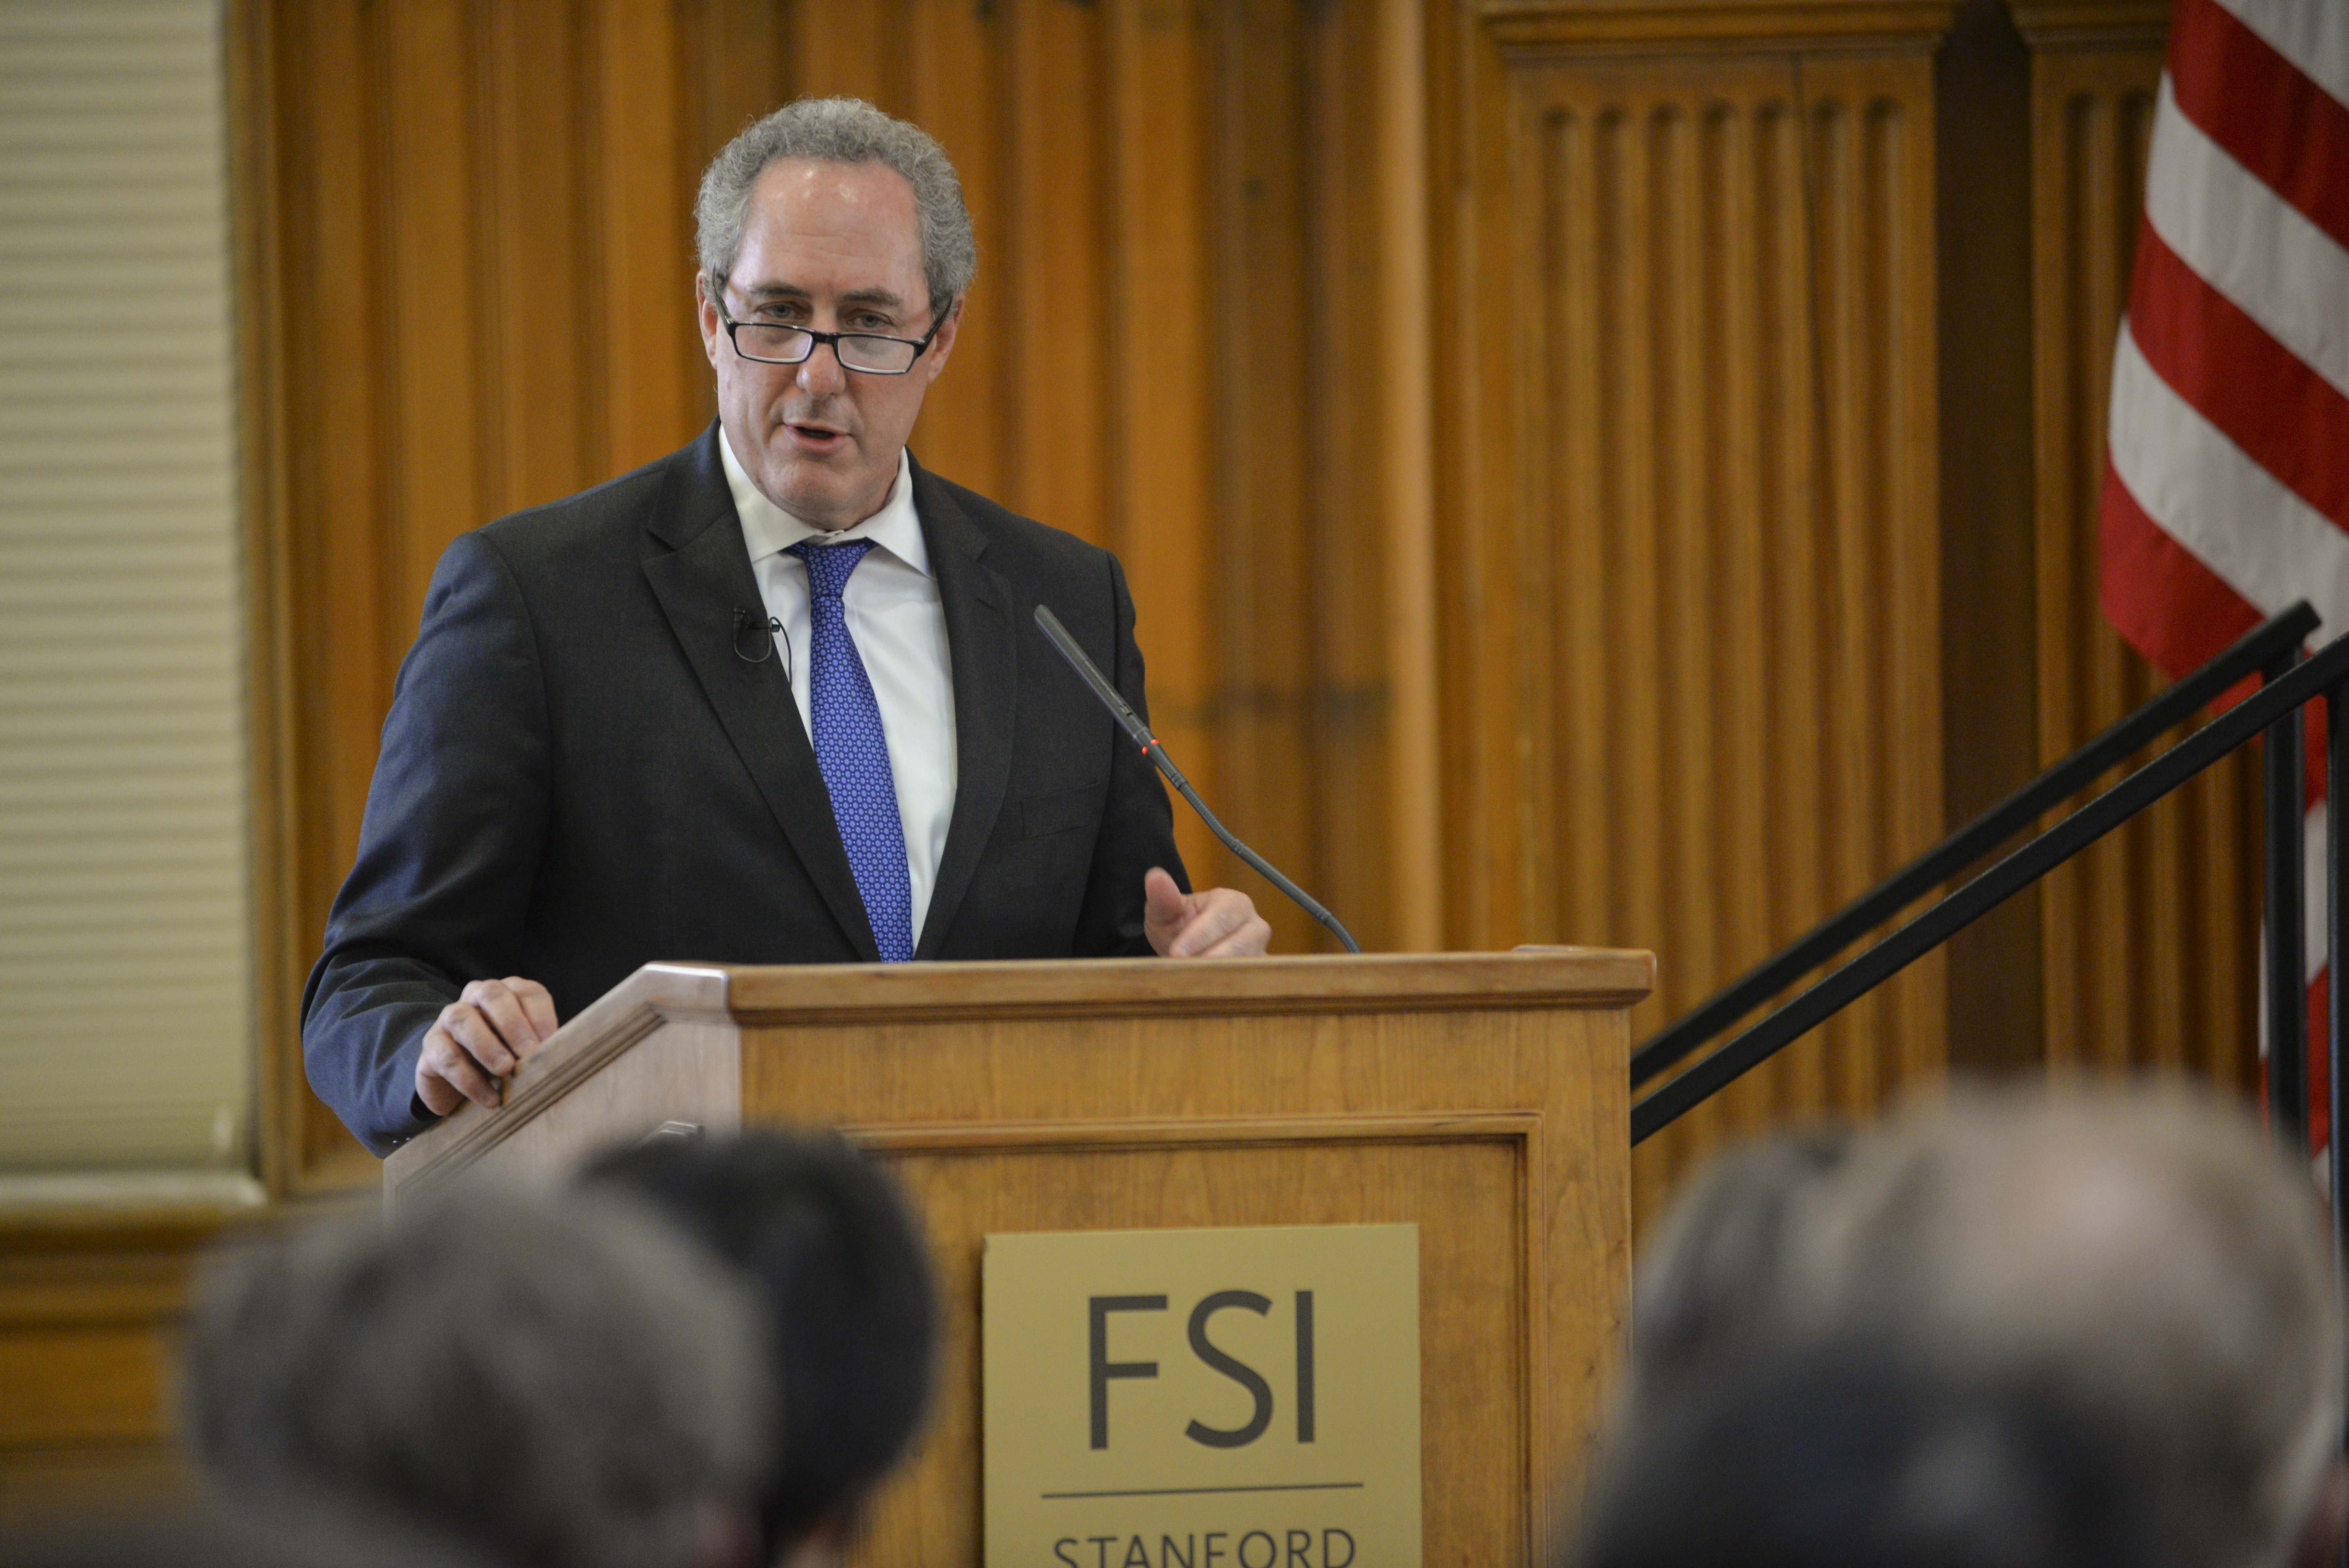 Photo of Michael Froman speaking at a lectern that has an FSI placard.